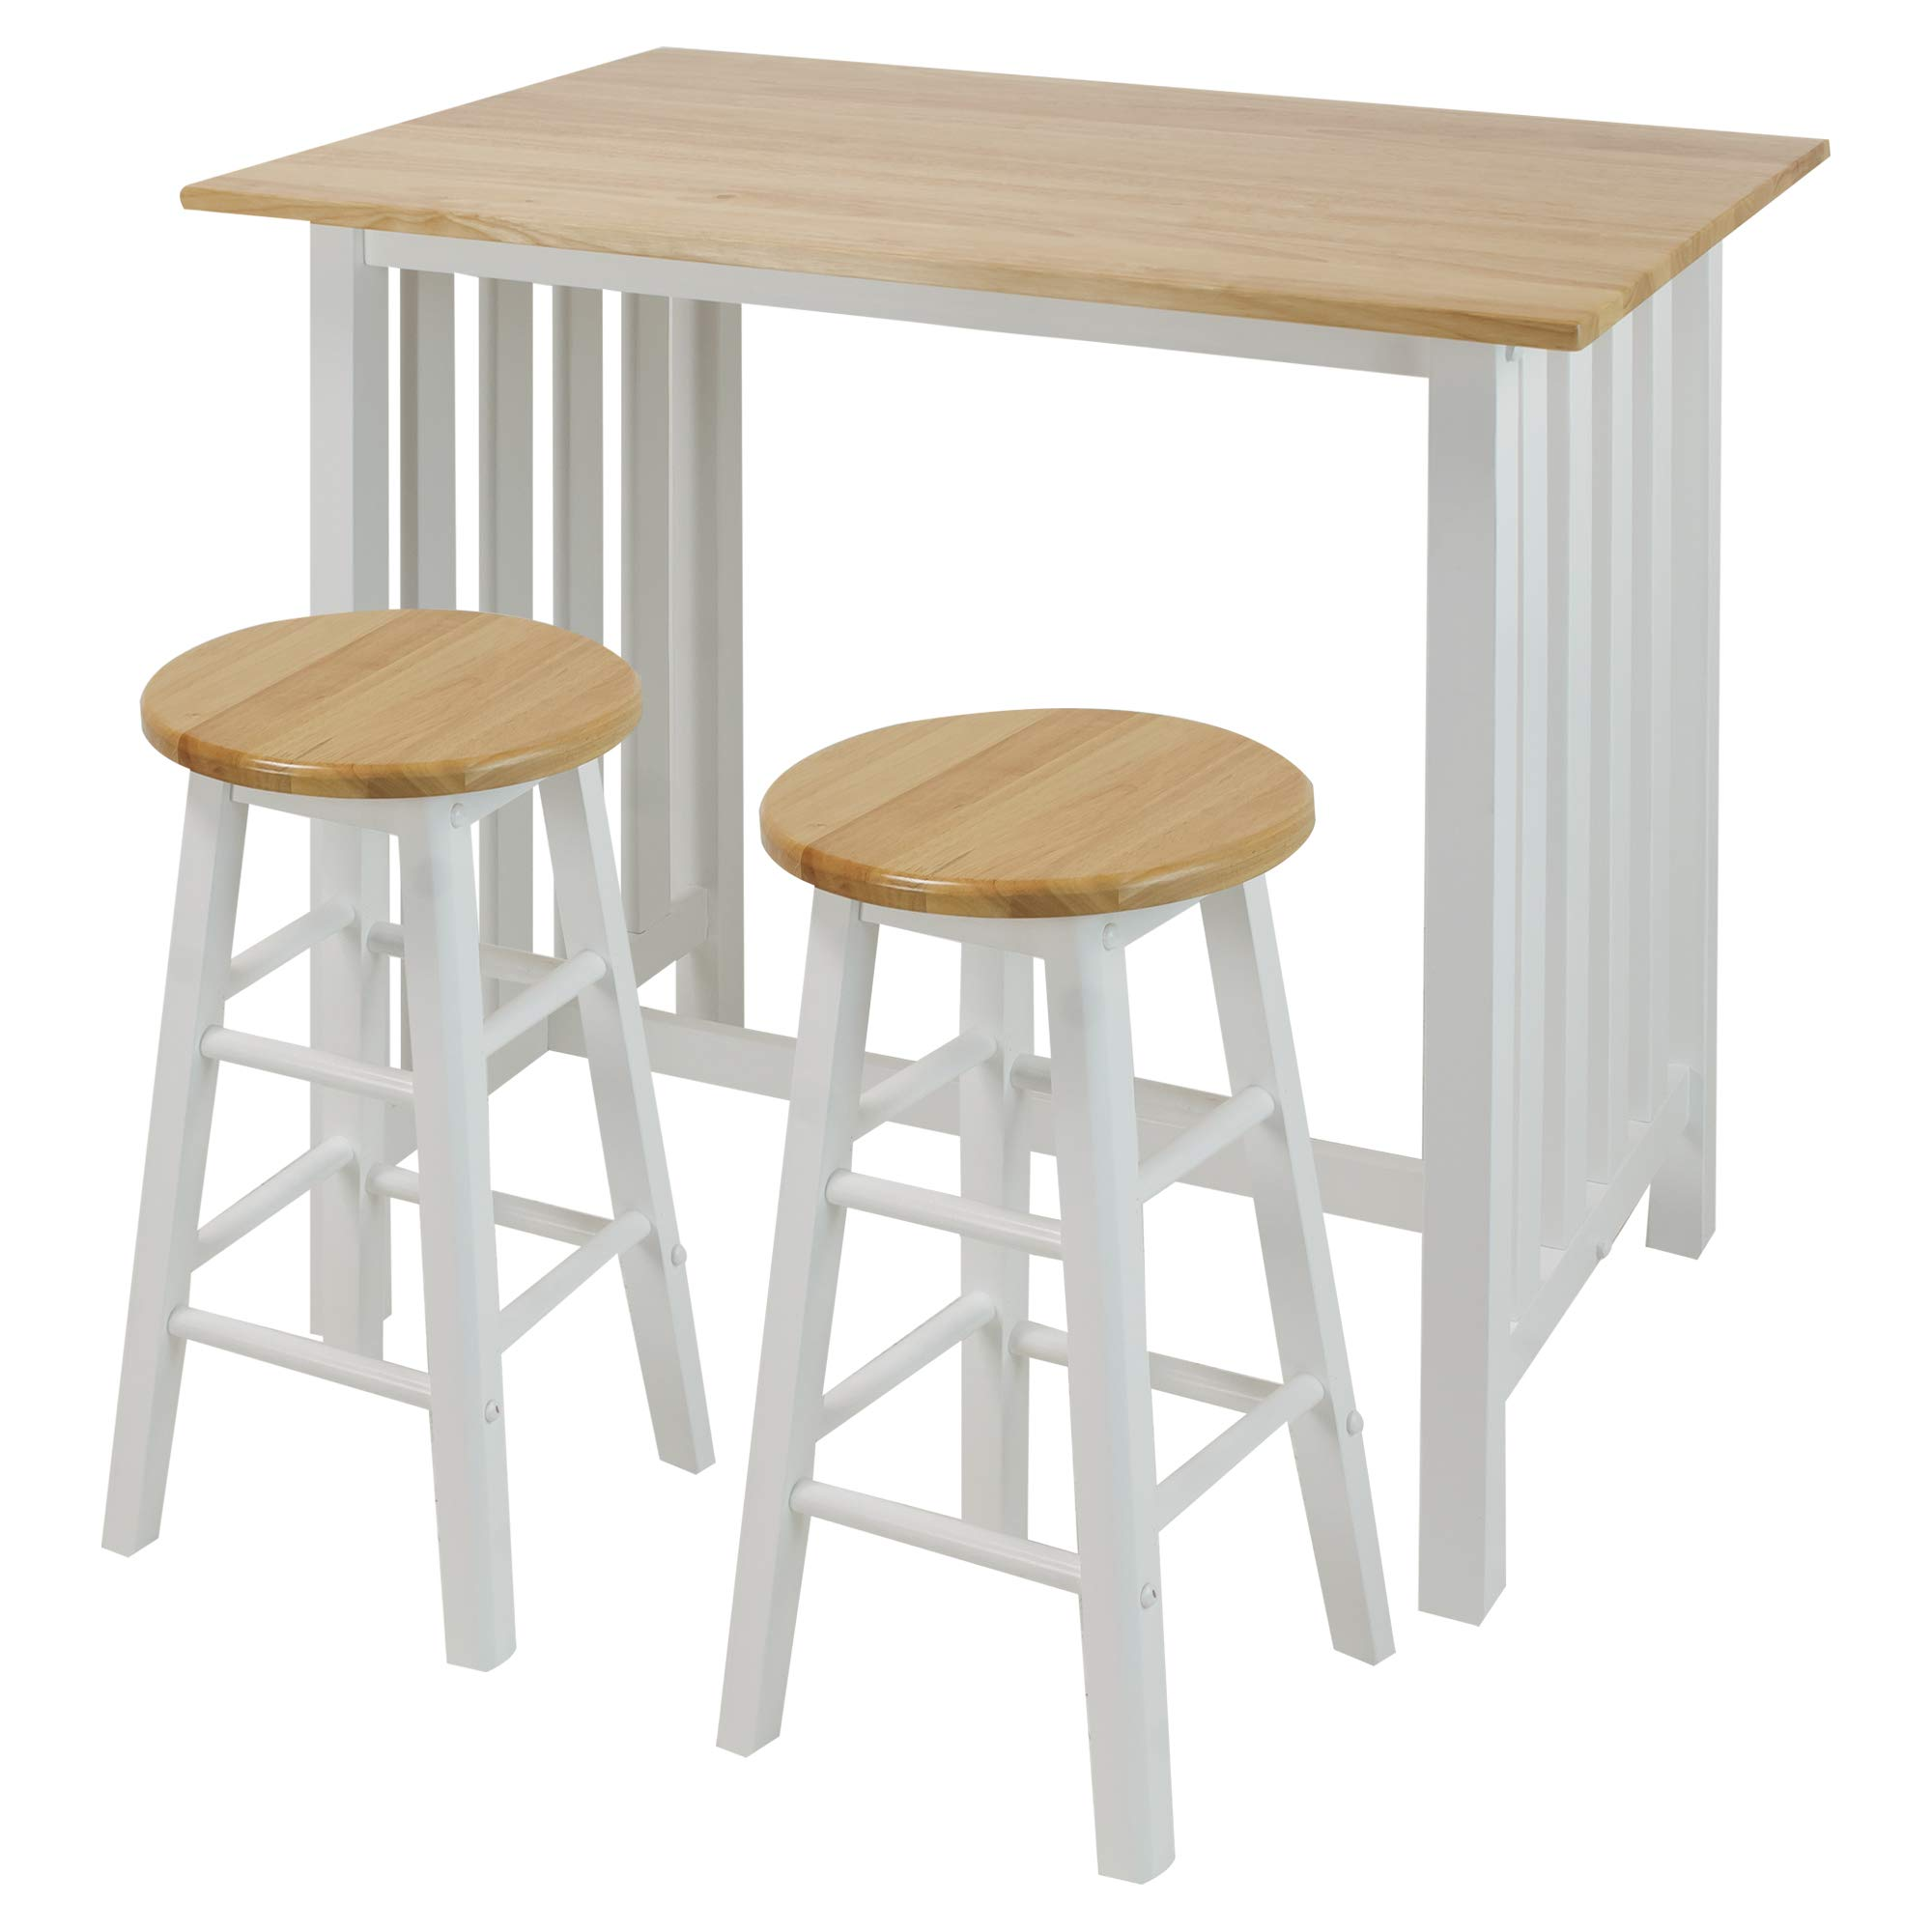 Casual Home 3-Piece Breakfast Set with Solid American Hardwood Top, White by Casual Home (Image #1)